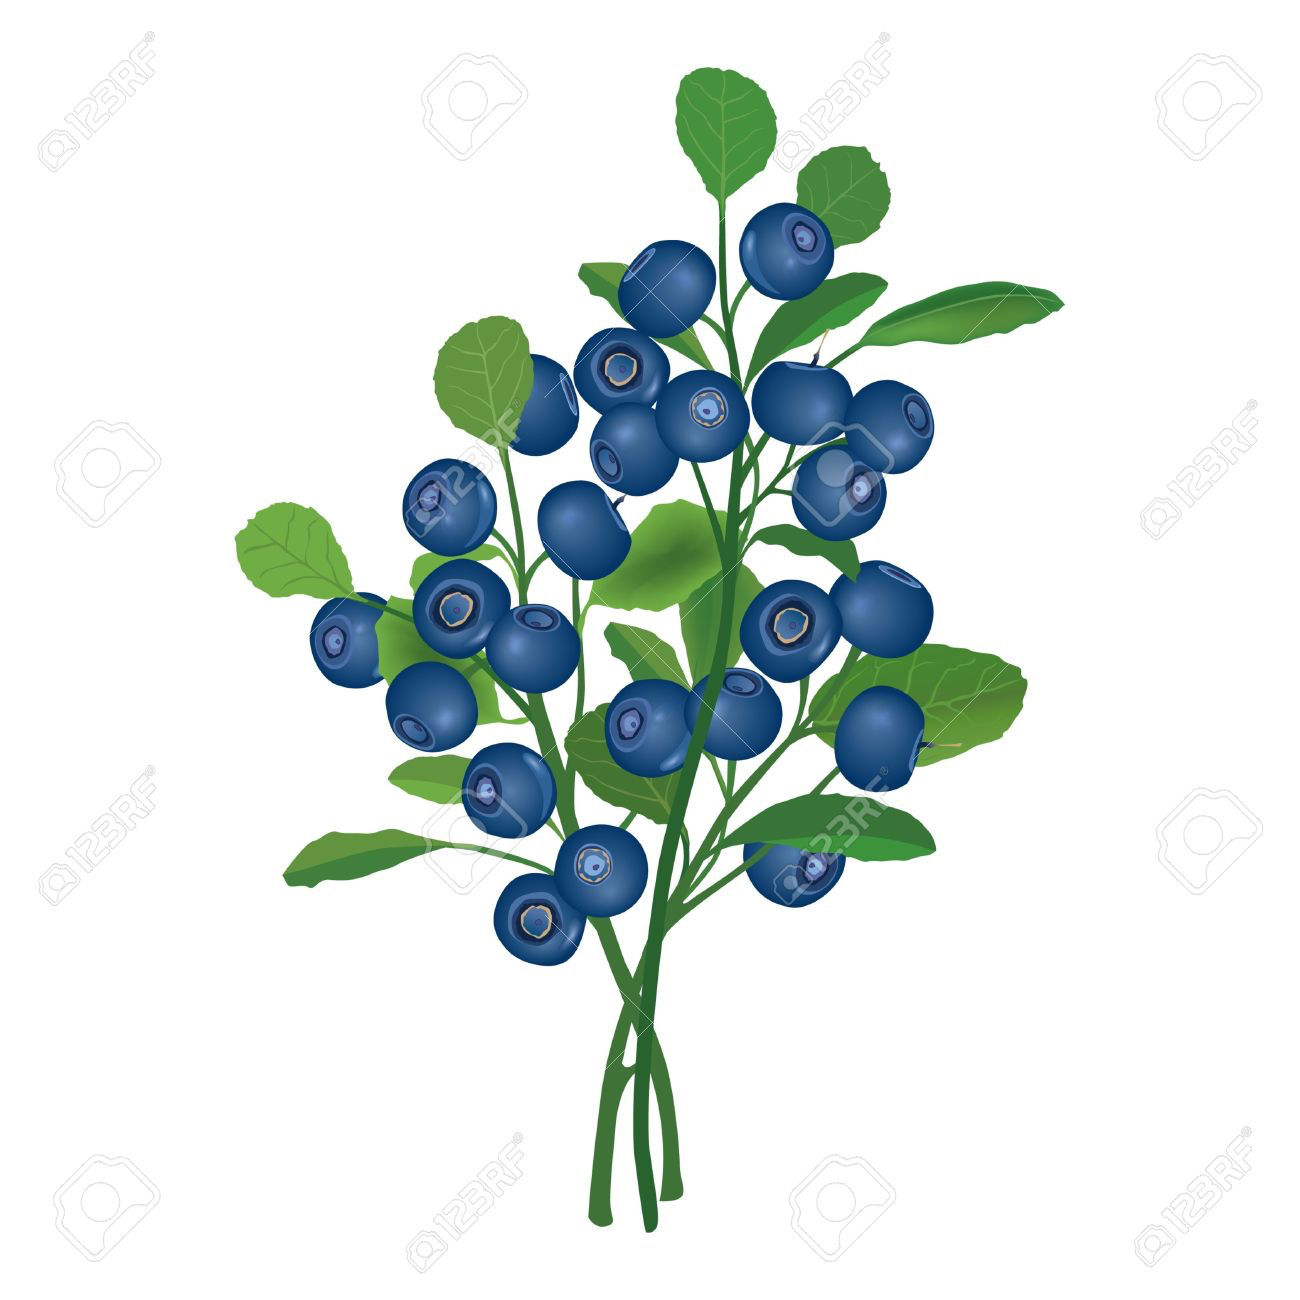 Blueberry Bush Drawing at GetDrawings